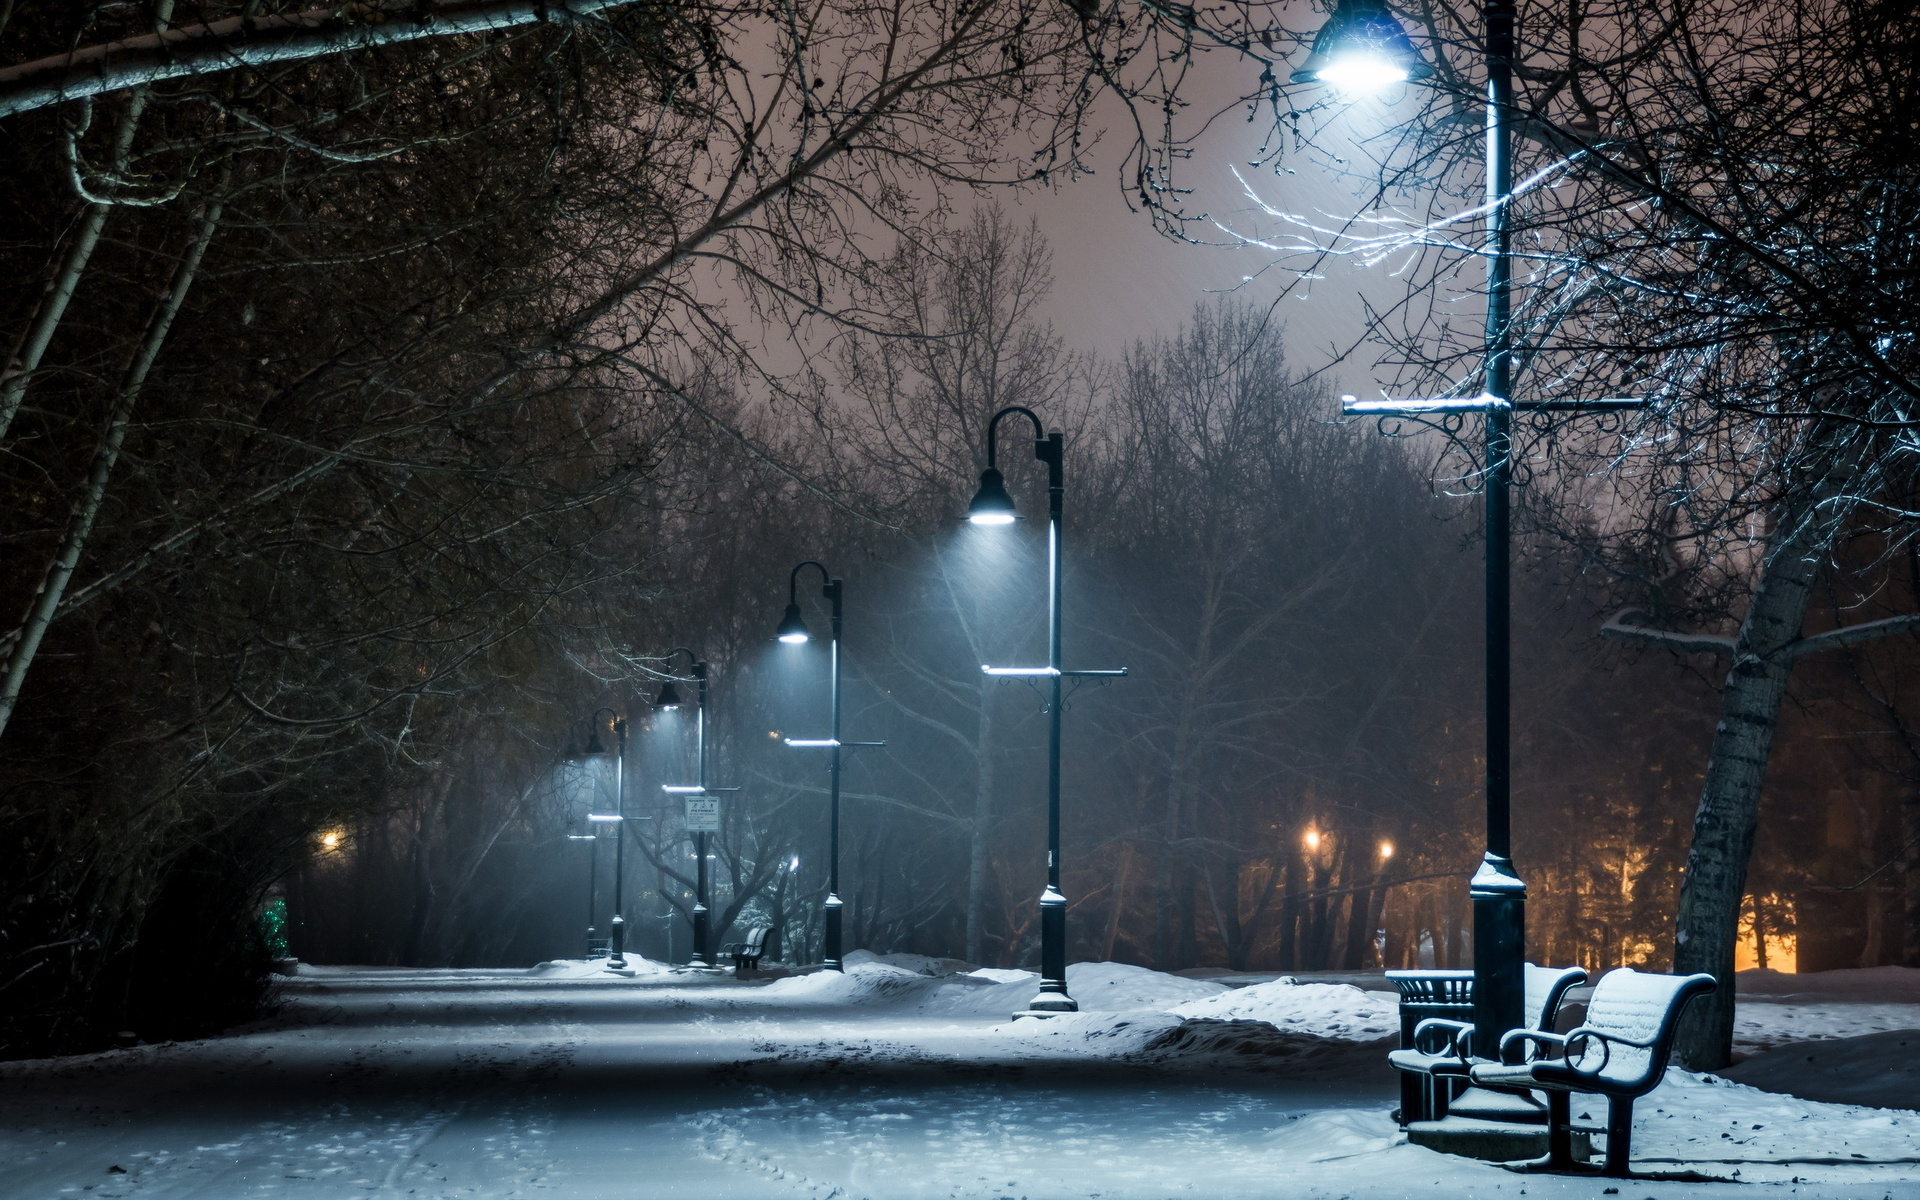 Snow Night Wallpaper Desktop Is Cool Wallpapers